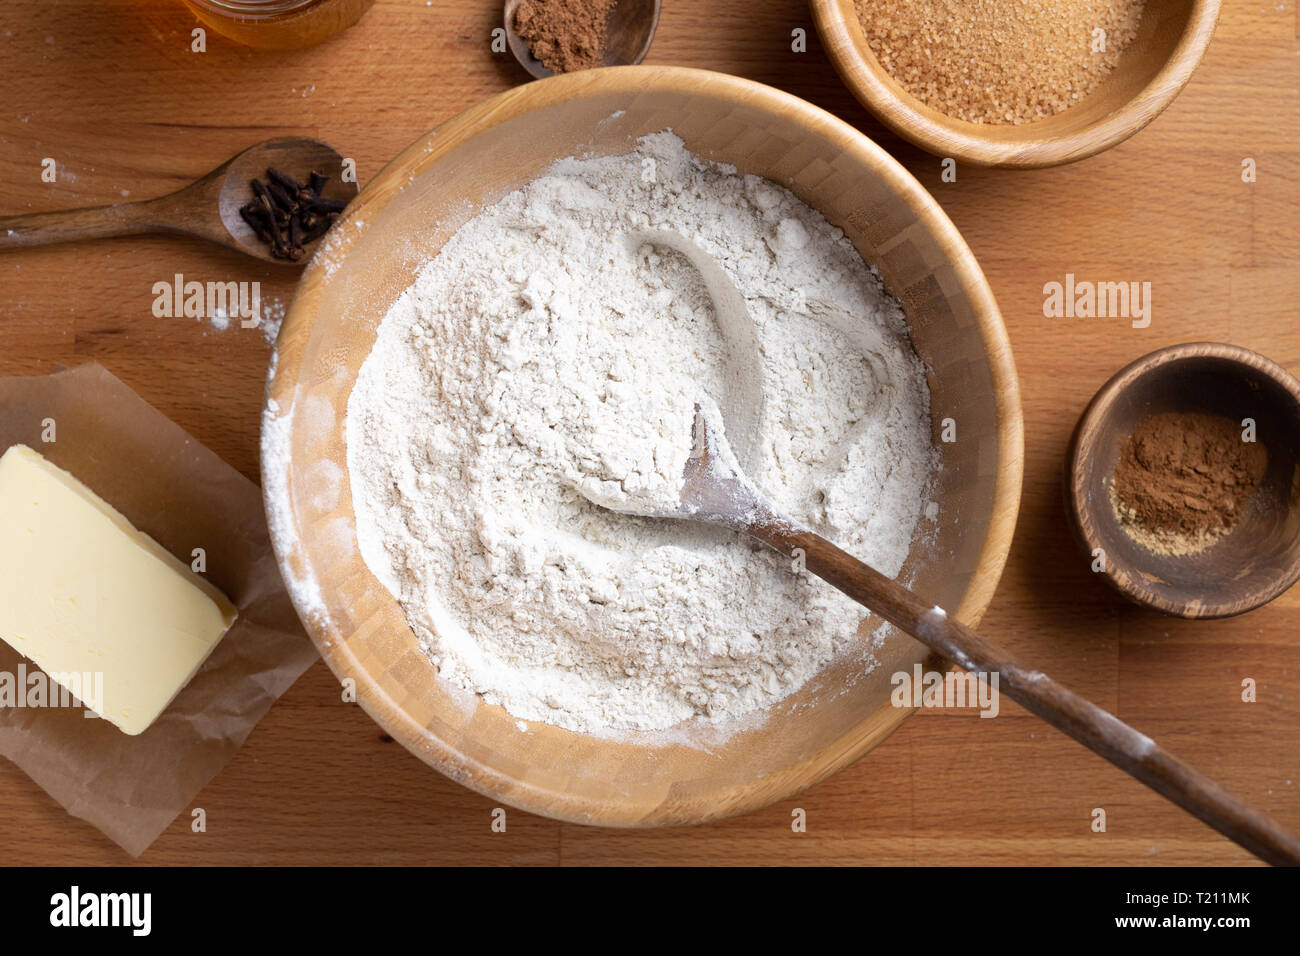 Top view of food ingredients with big bowl of flour in the middle new year concept. - Stock Image